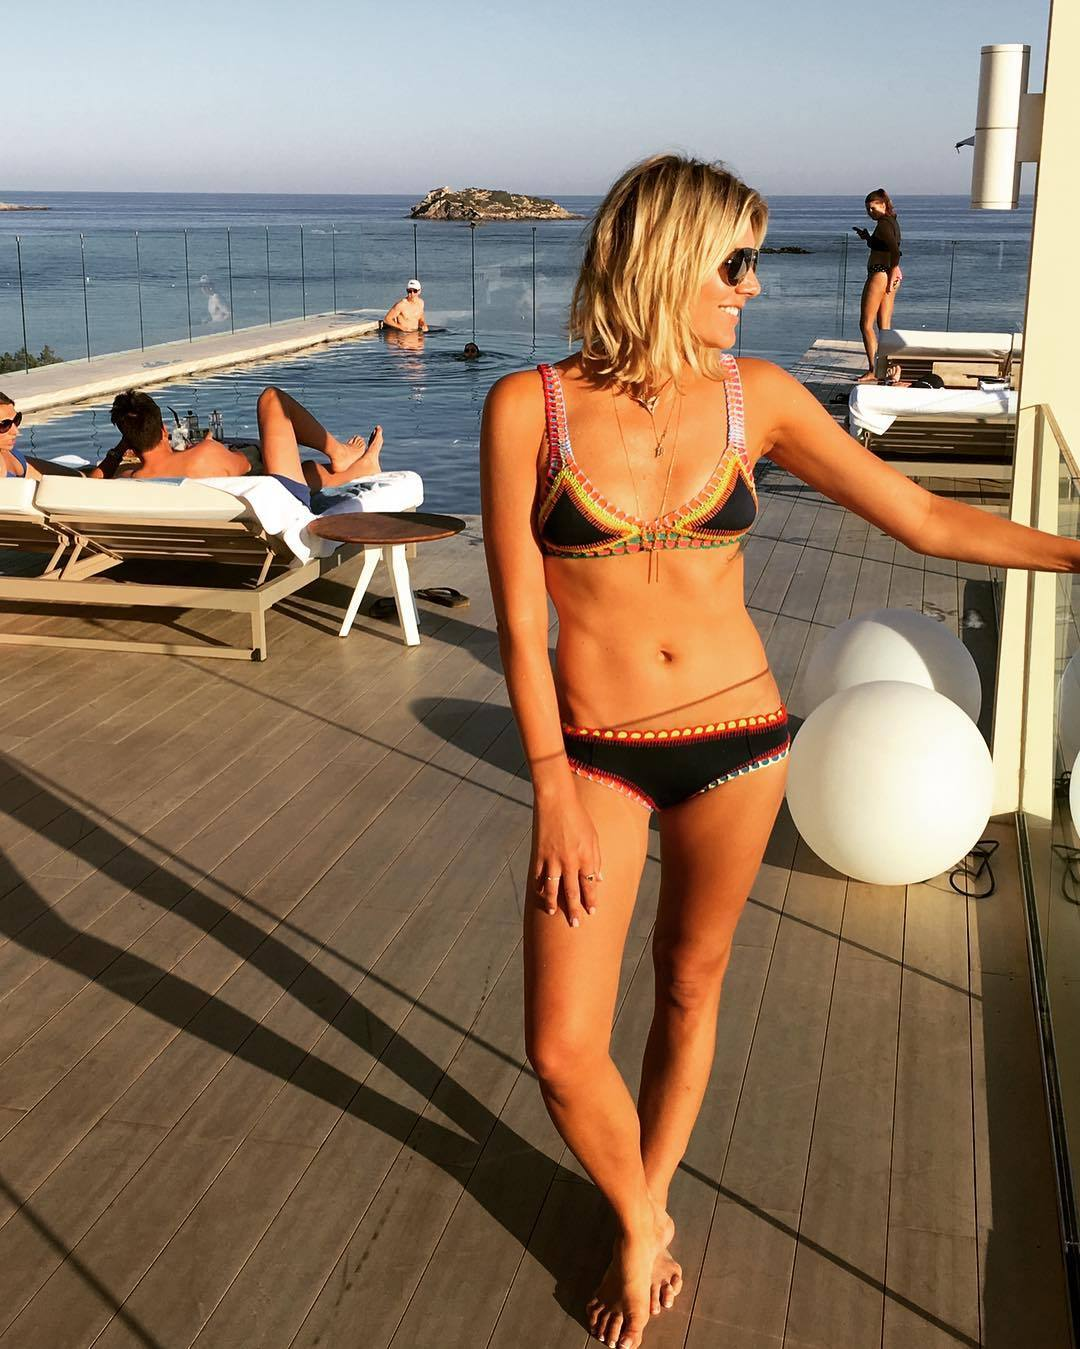 Bikini Charissa Thompson nude photos 2019